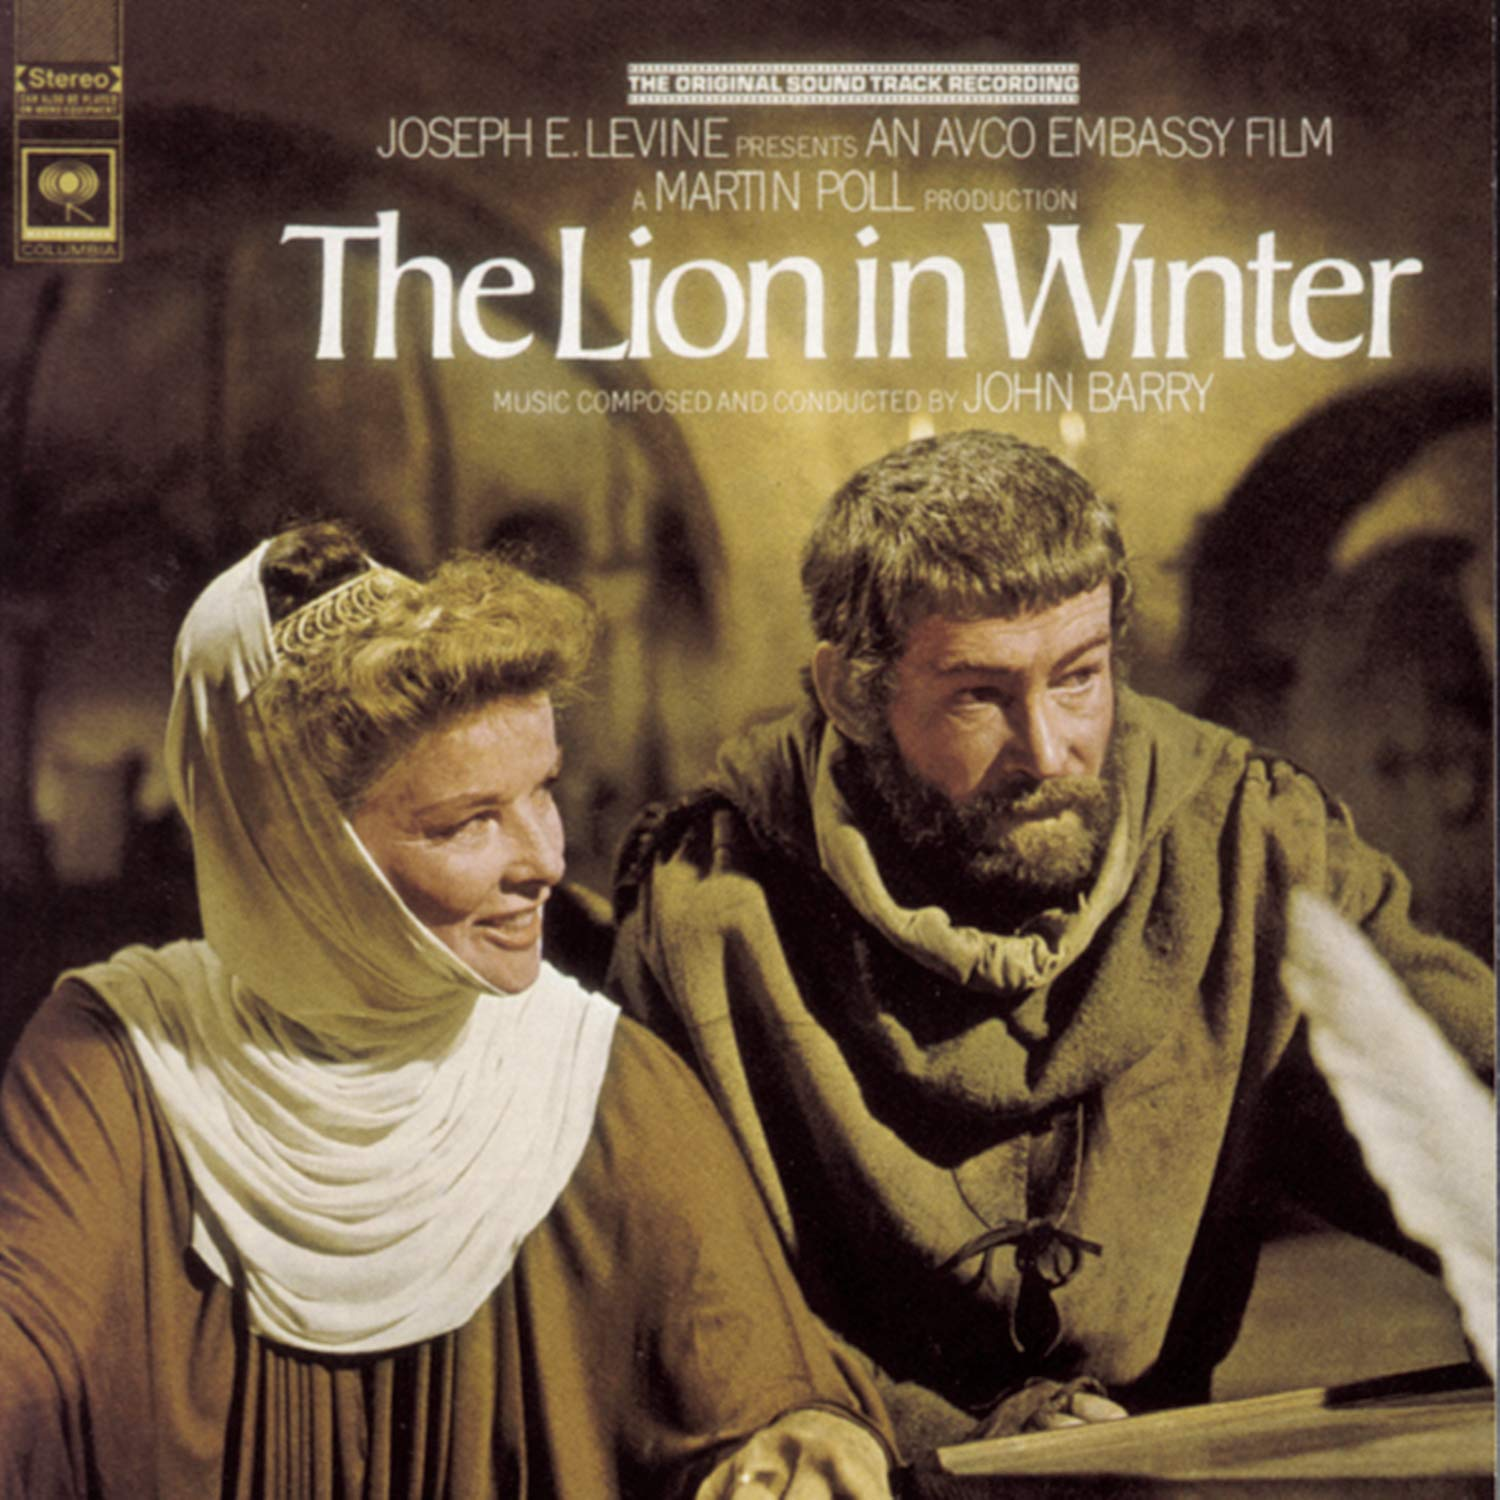 The Lion in Winter (1968) – Biography, History, Drama